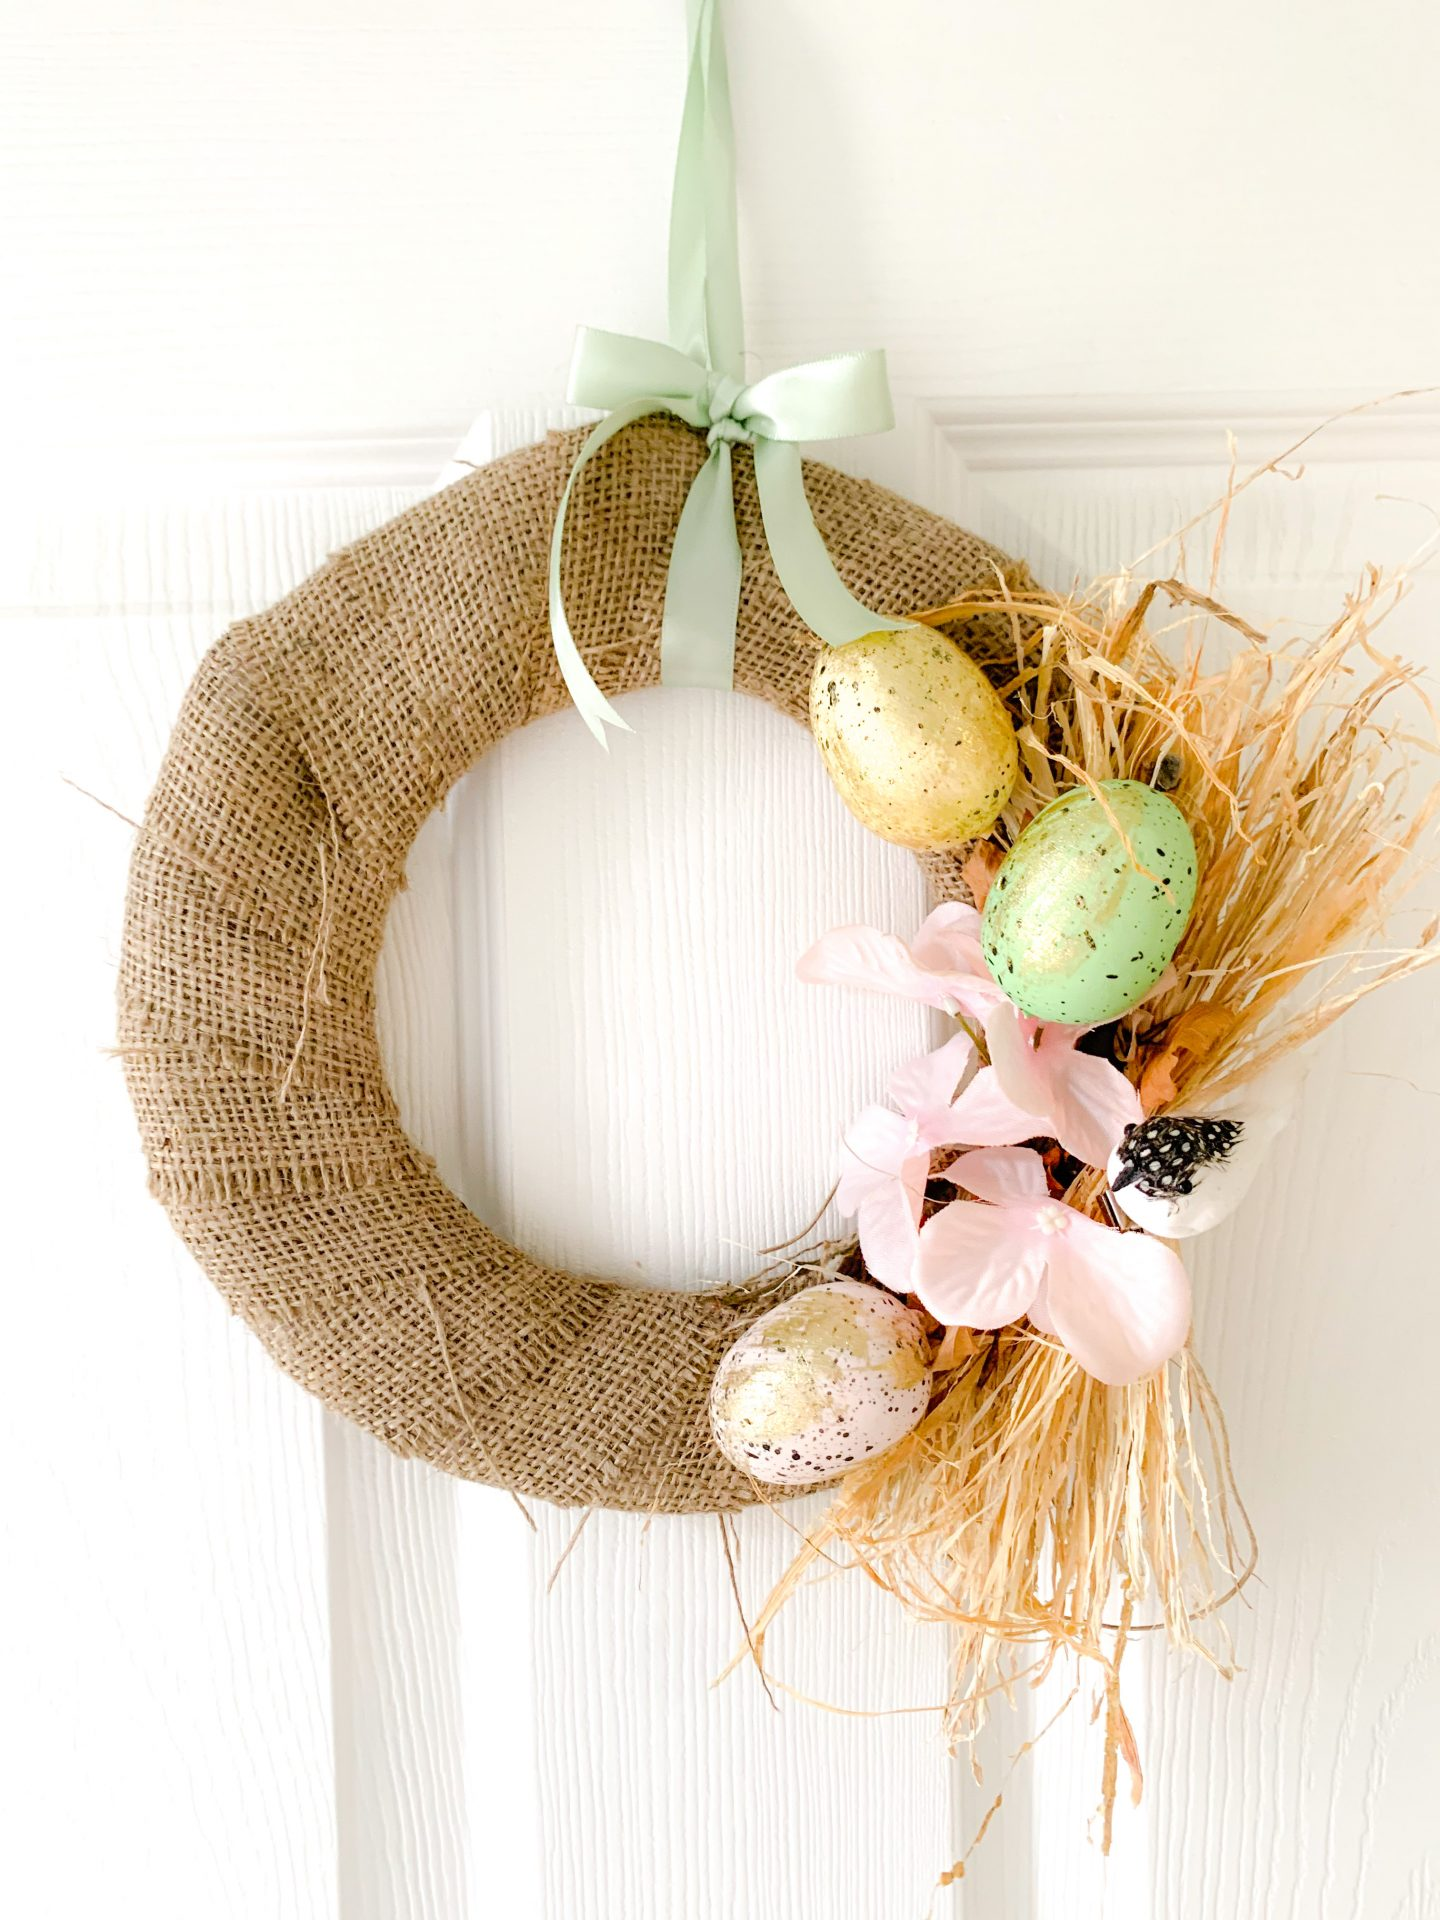 DIY PAPER PLATE EASTER WREATHS